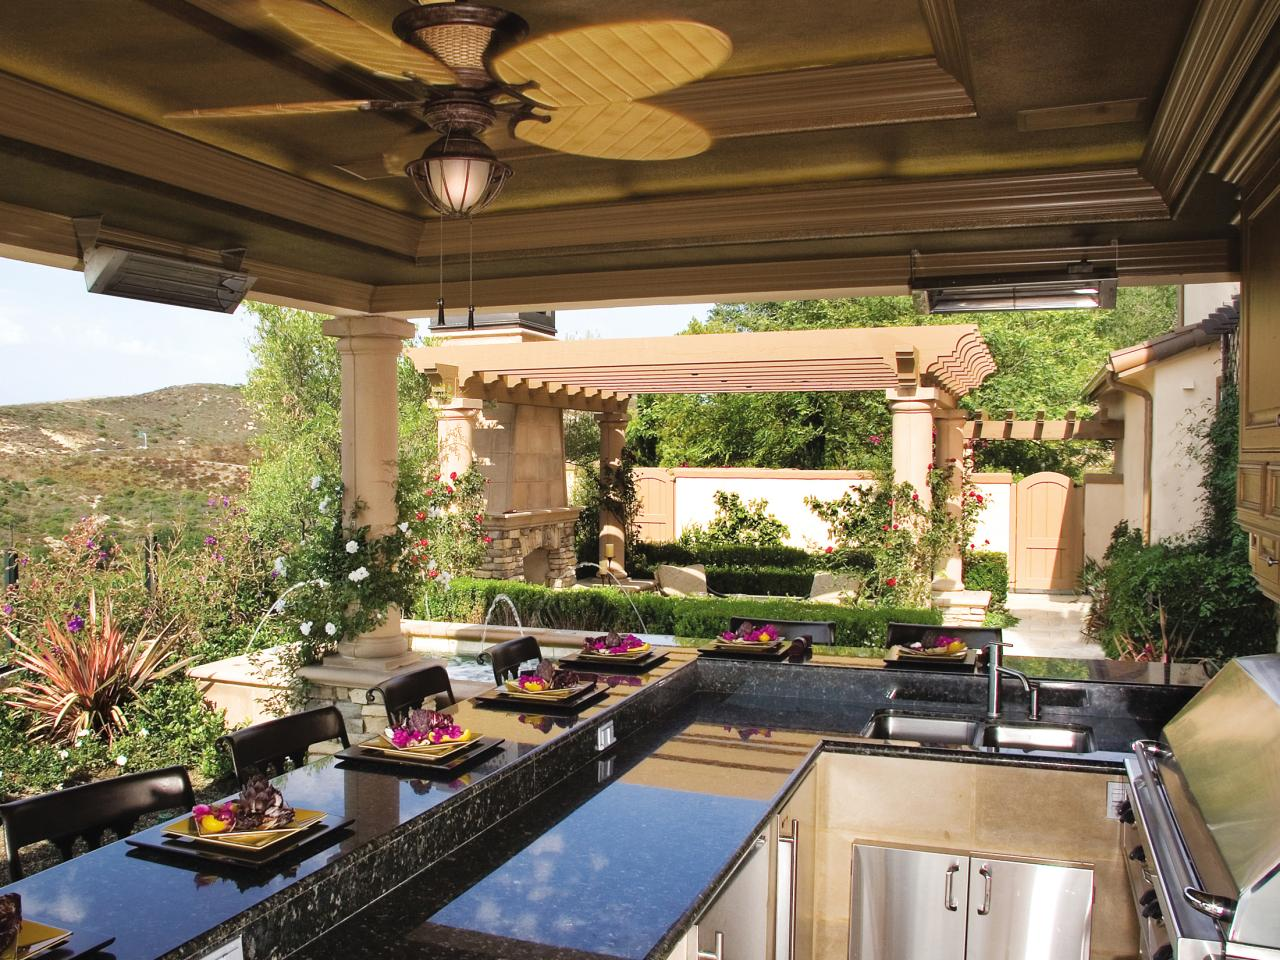 outdoor kitchens outdoor kitchen countertops options HOFJZTV